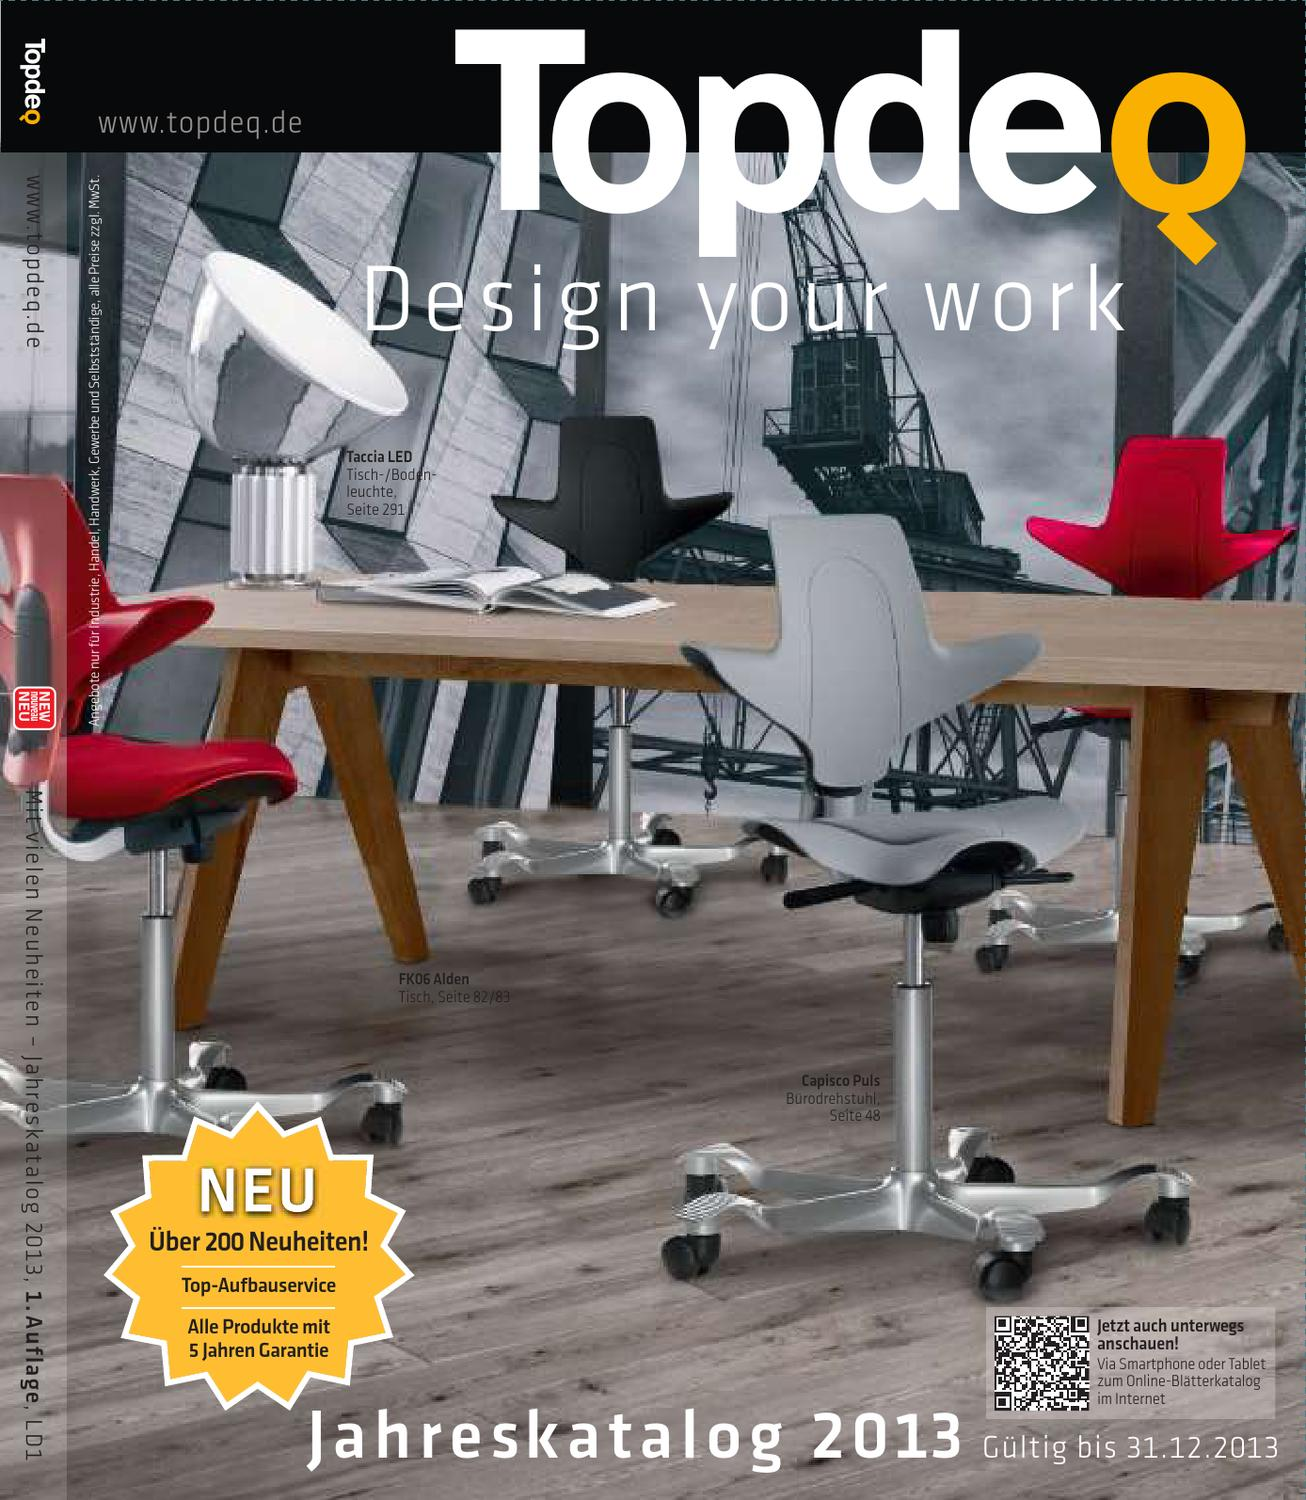 Glasregal Wellenform Topdeq Designmöbel Katalog 2013 By Topdeq Design Your Work Issuu